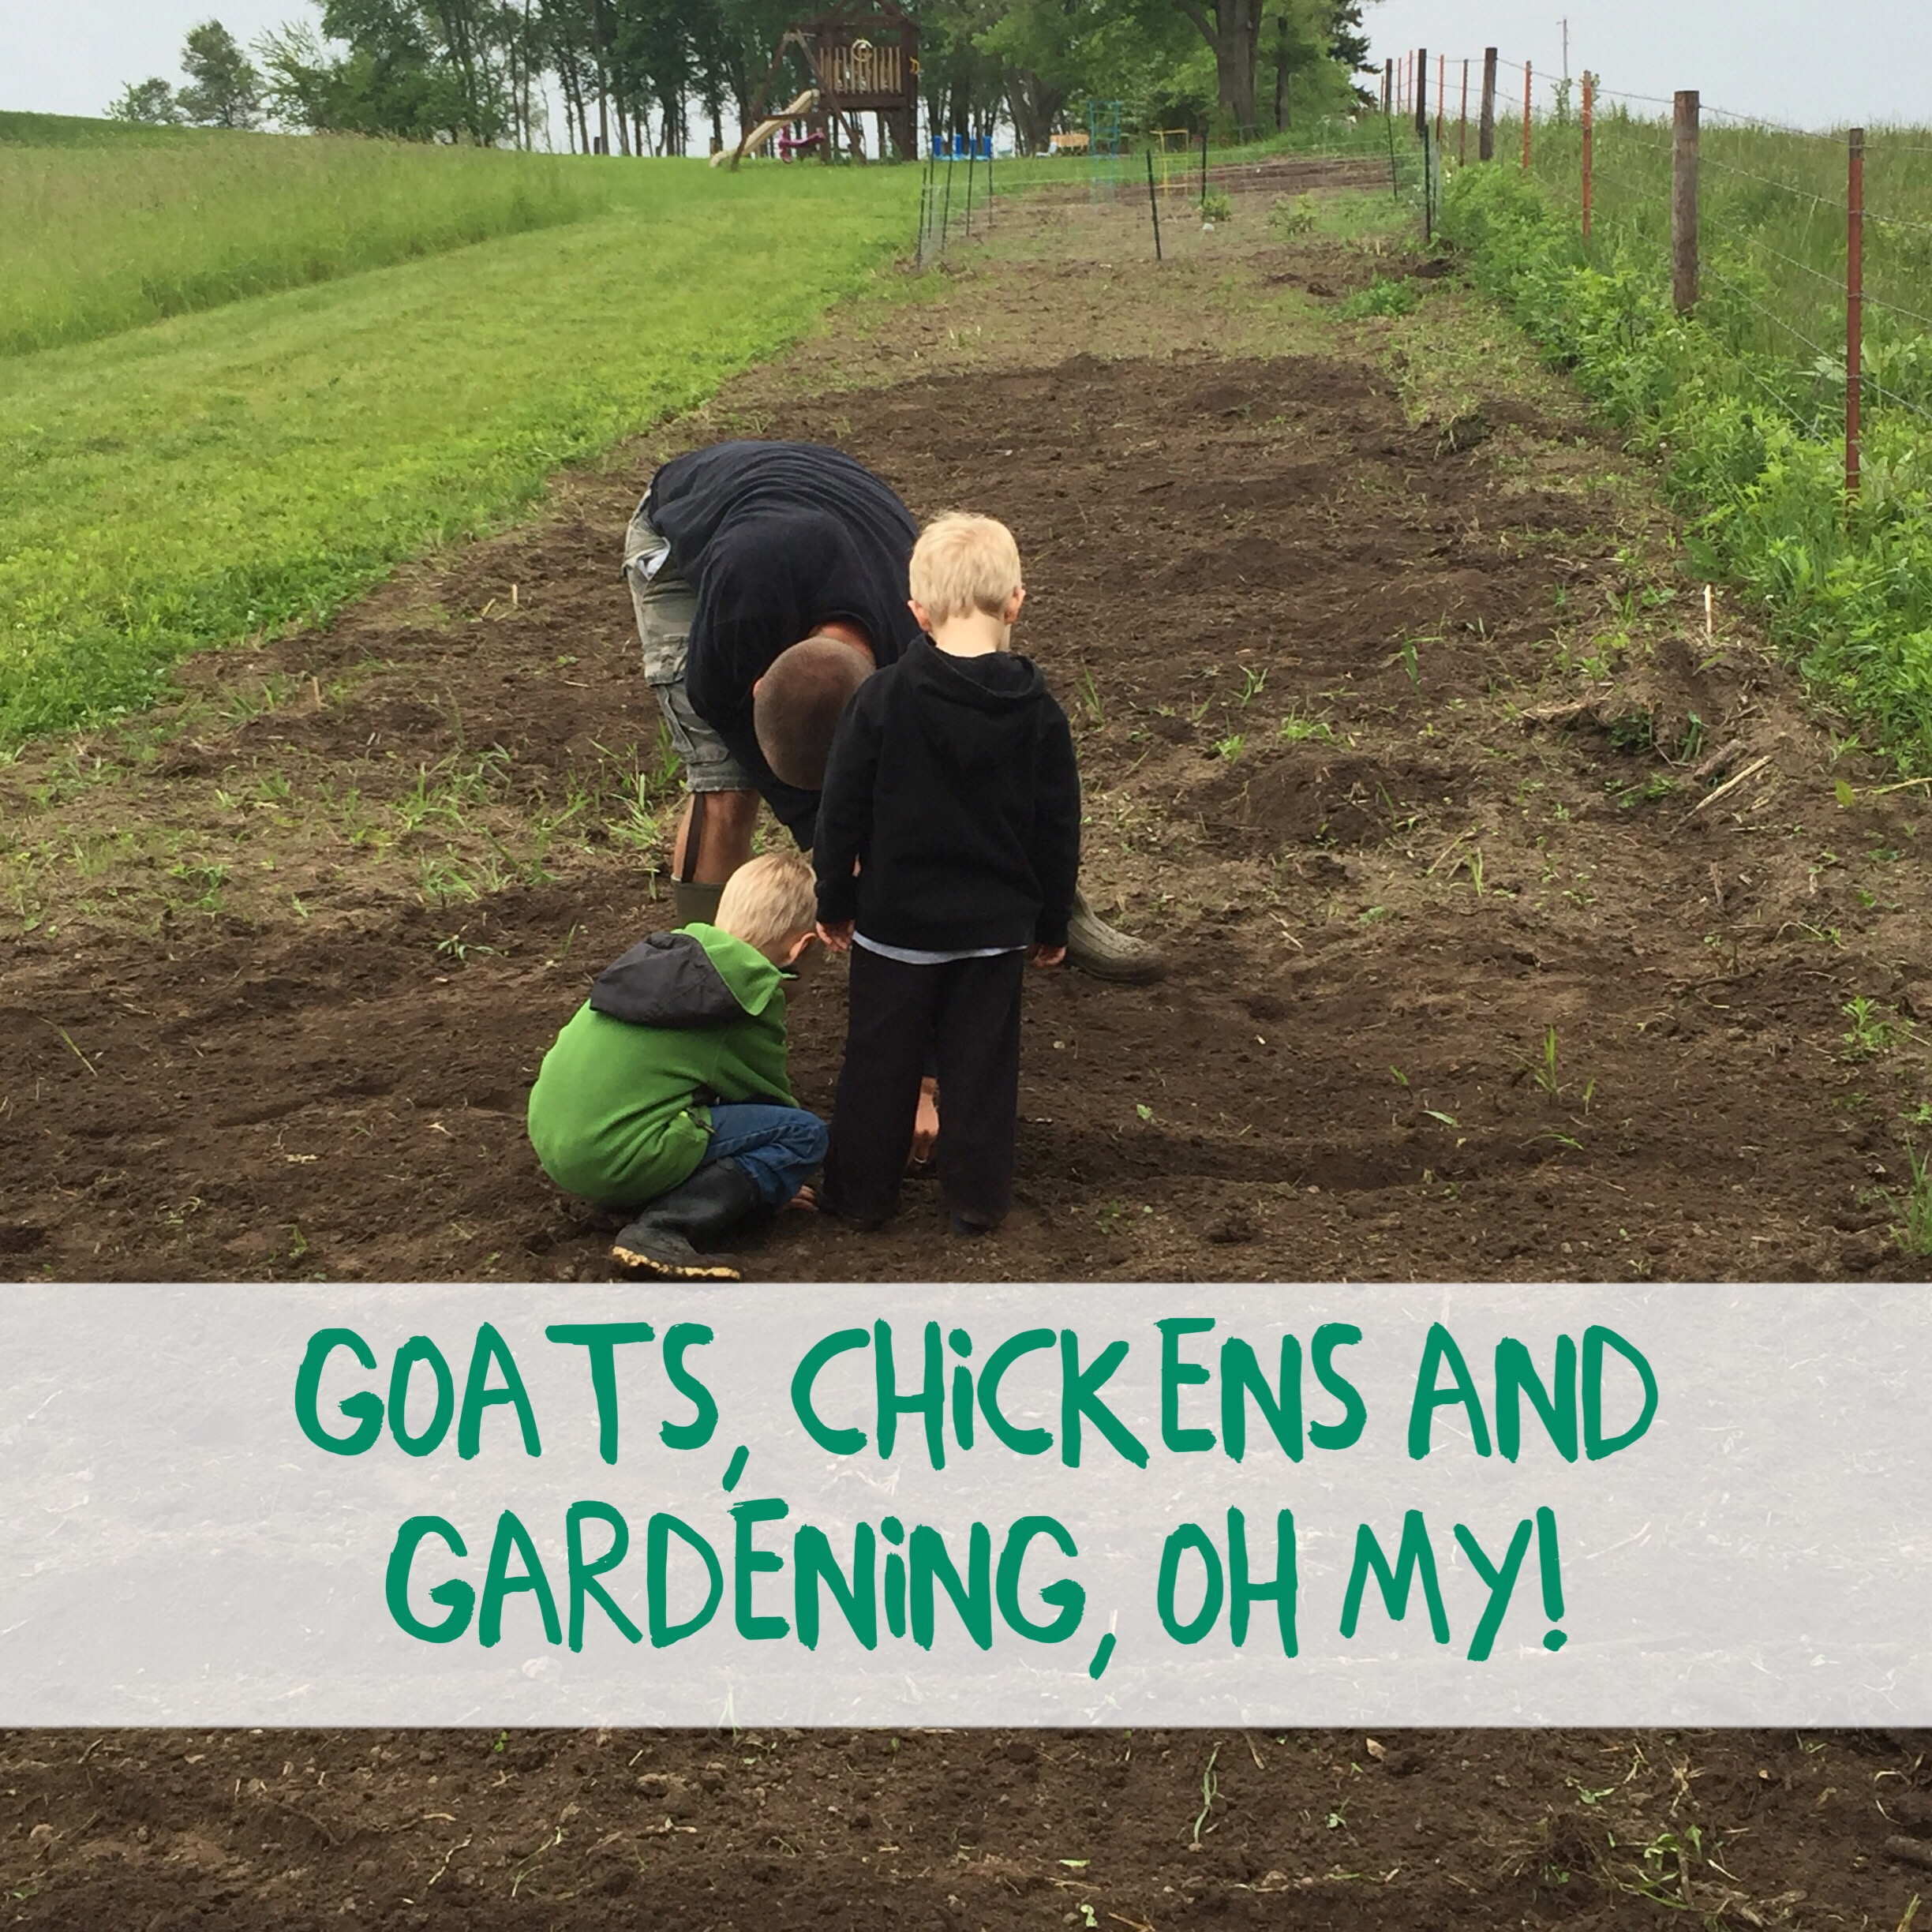 Goats, Chickens and Gardening, Oh My!